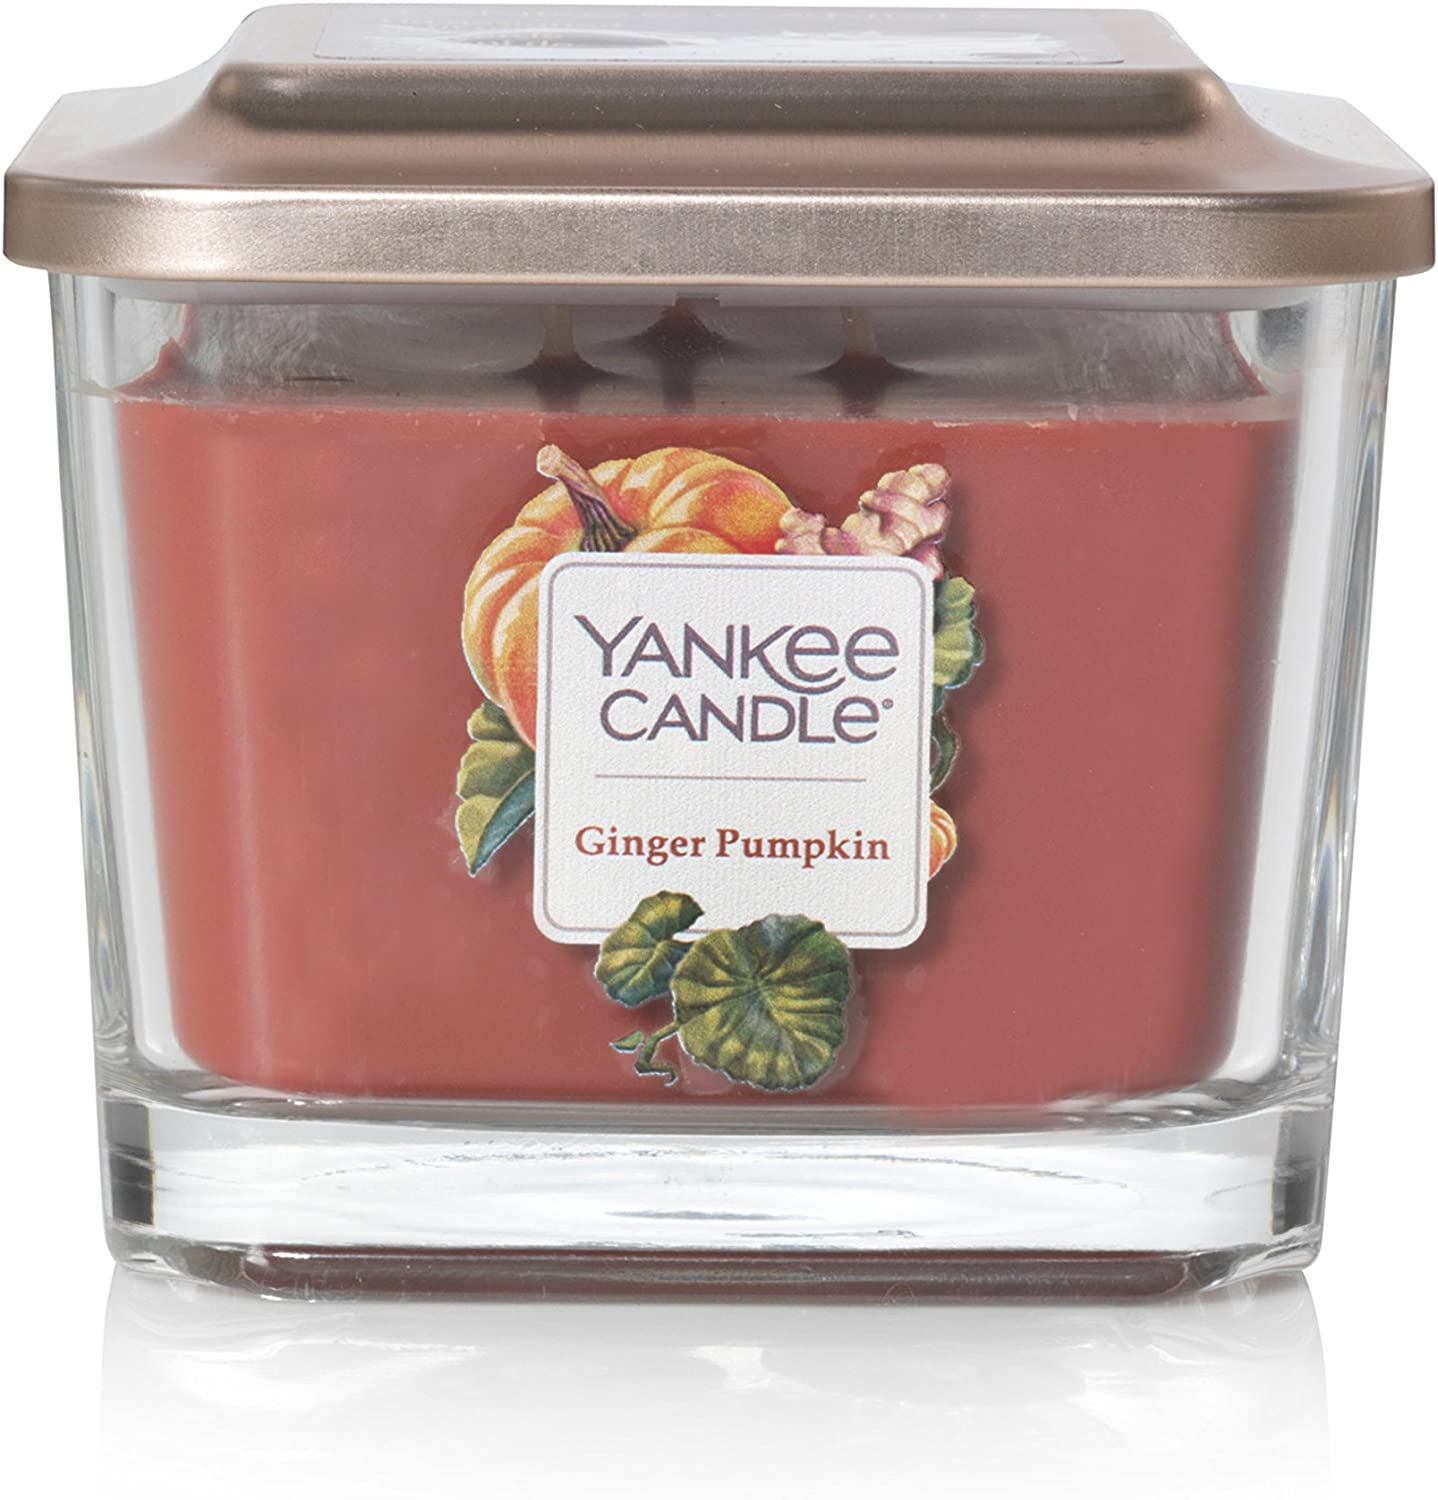 Yankee Candle Elevation Collection with Platform Lid Ginger Pumpkin Scented Candle, Medium 3-Wick, 38 Hour Burn Time